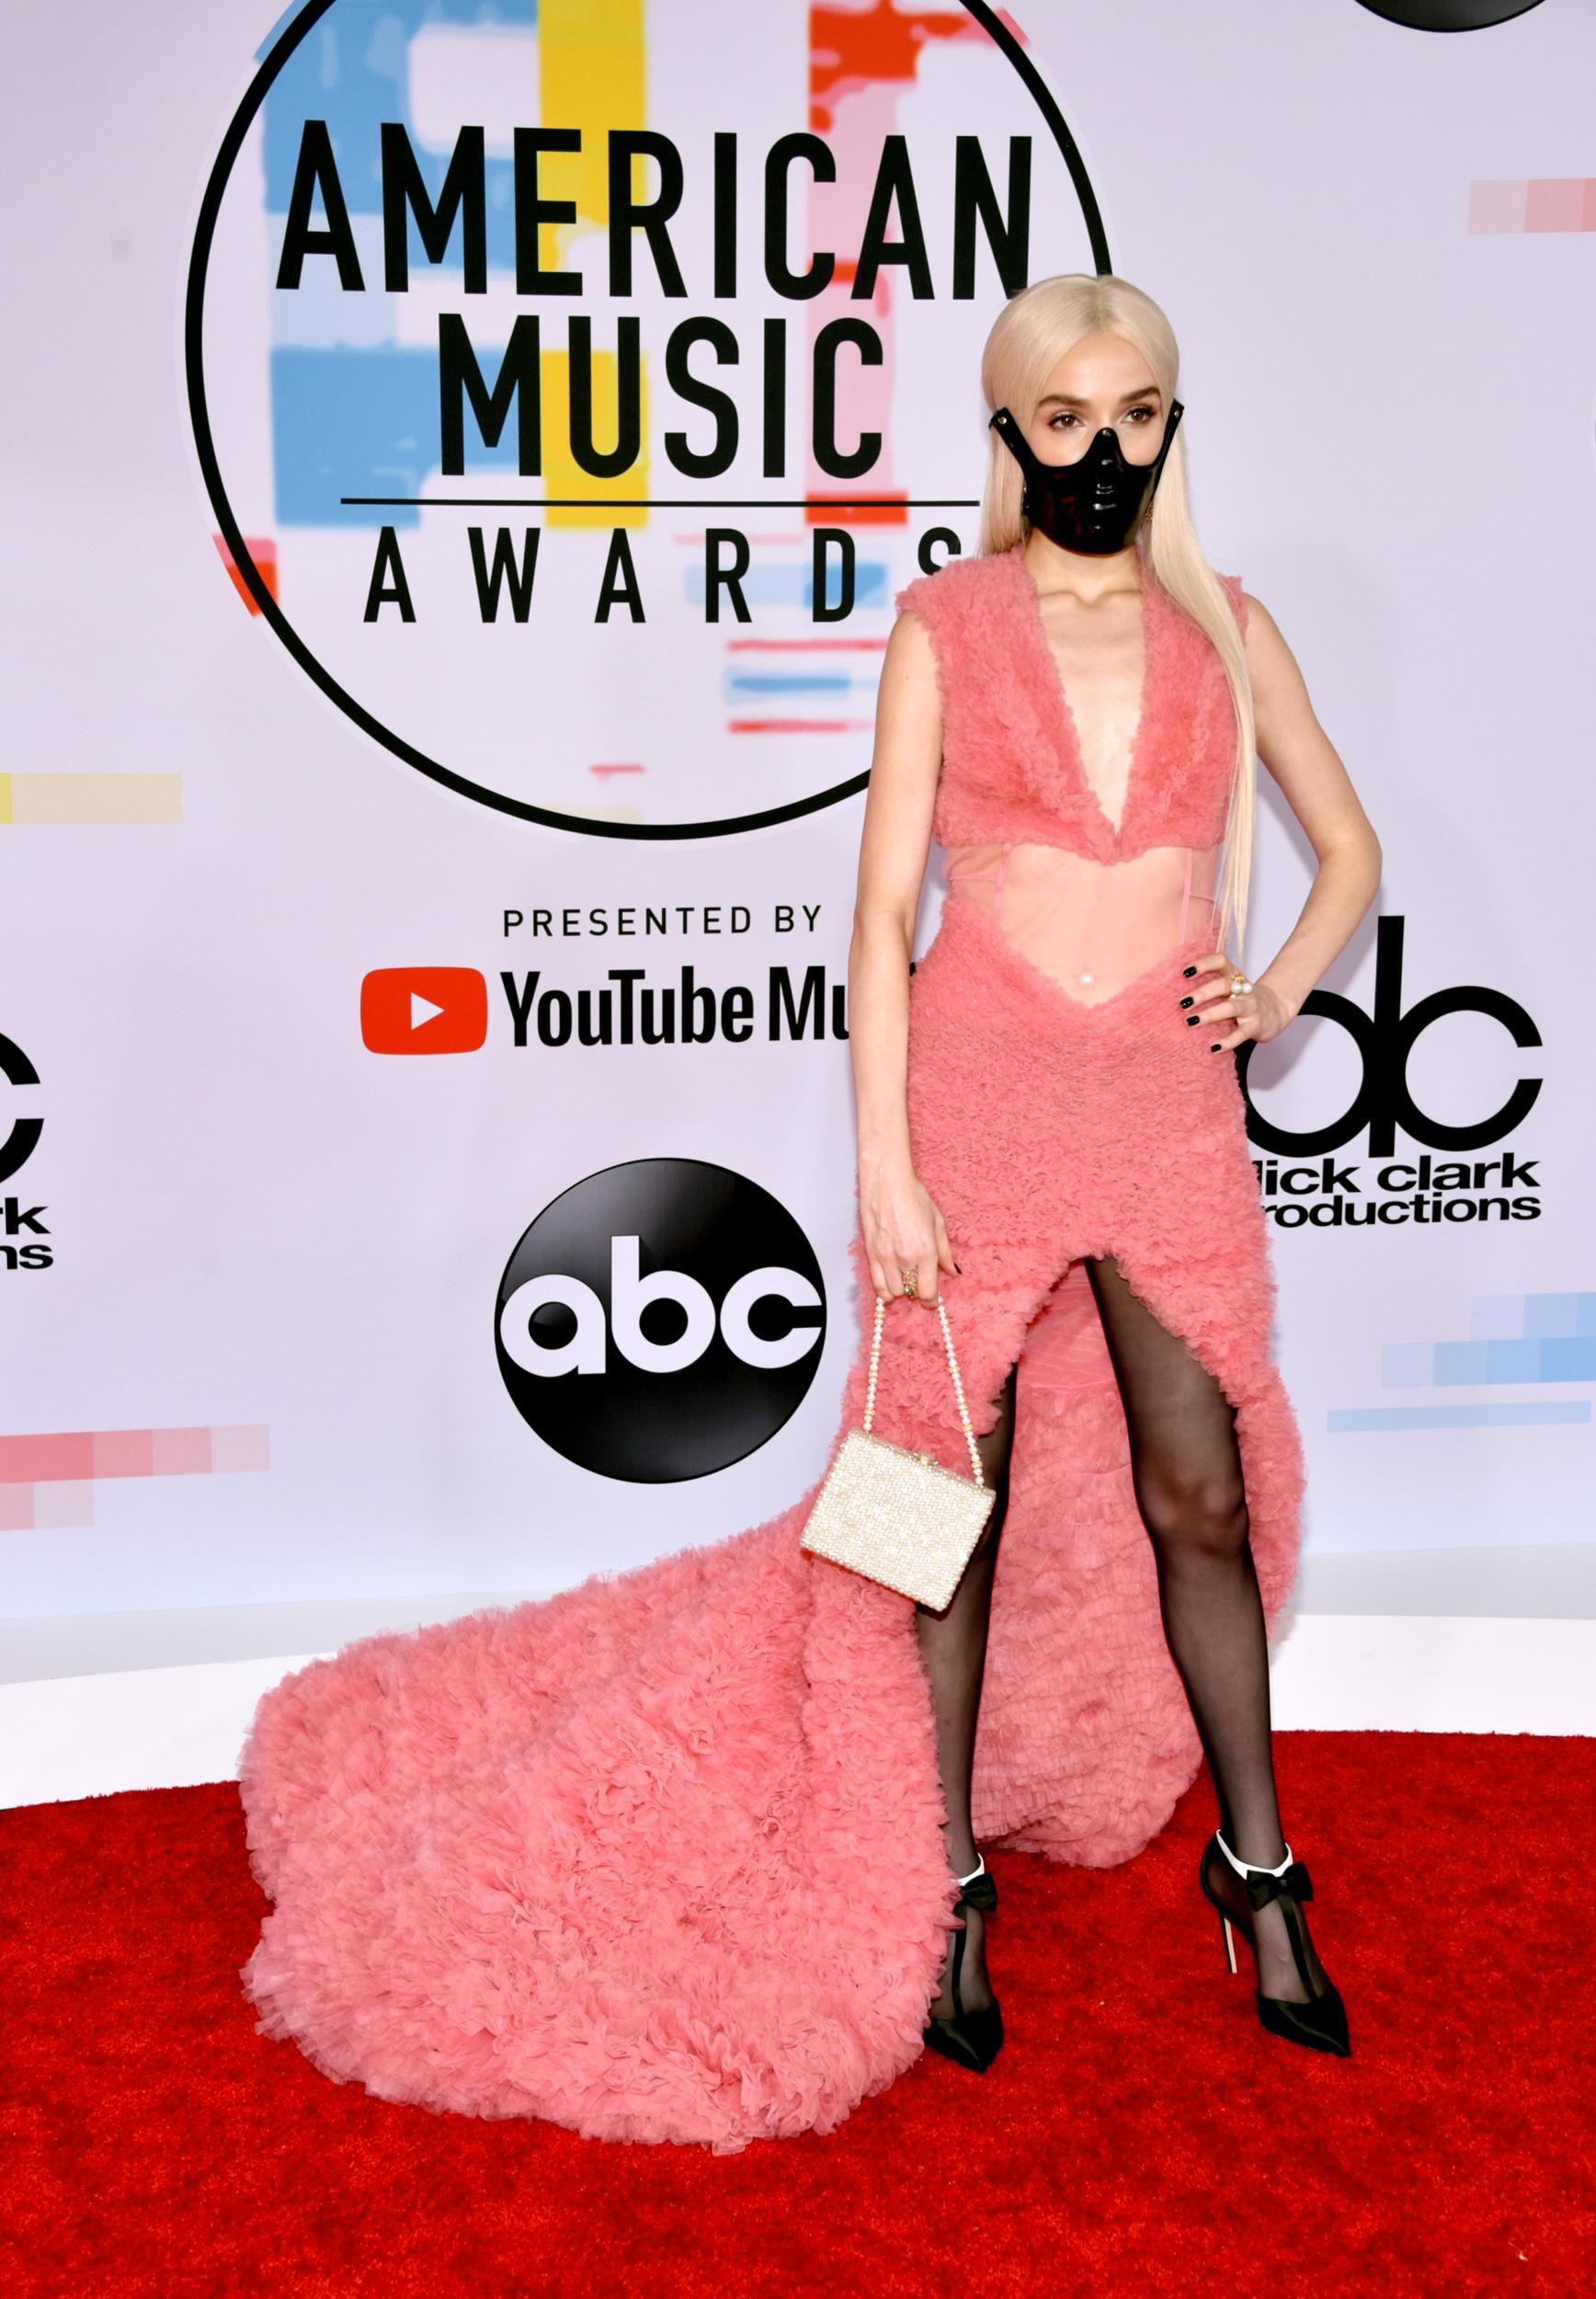 LOS ANGELES, CA - OCTOBER 09: Poppy attends the 2018 American Music Awards at Microsoft Theater on October 9, 2018 in Los Angeles, California. (Photo by John Shearer/Getty Images For dcp)